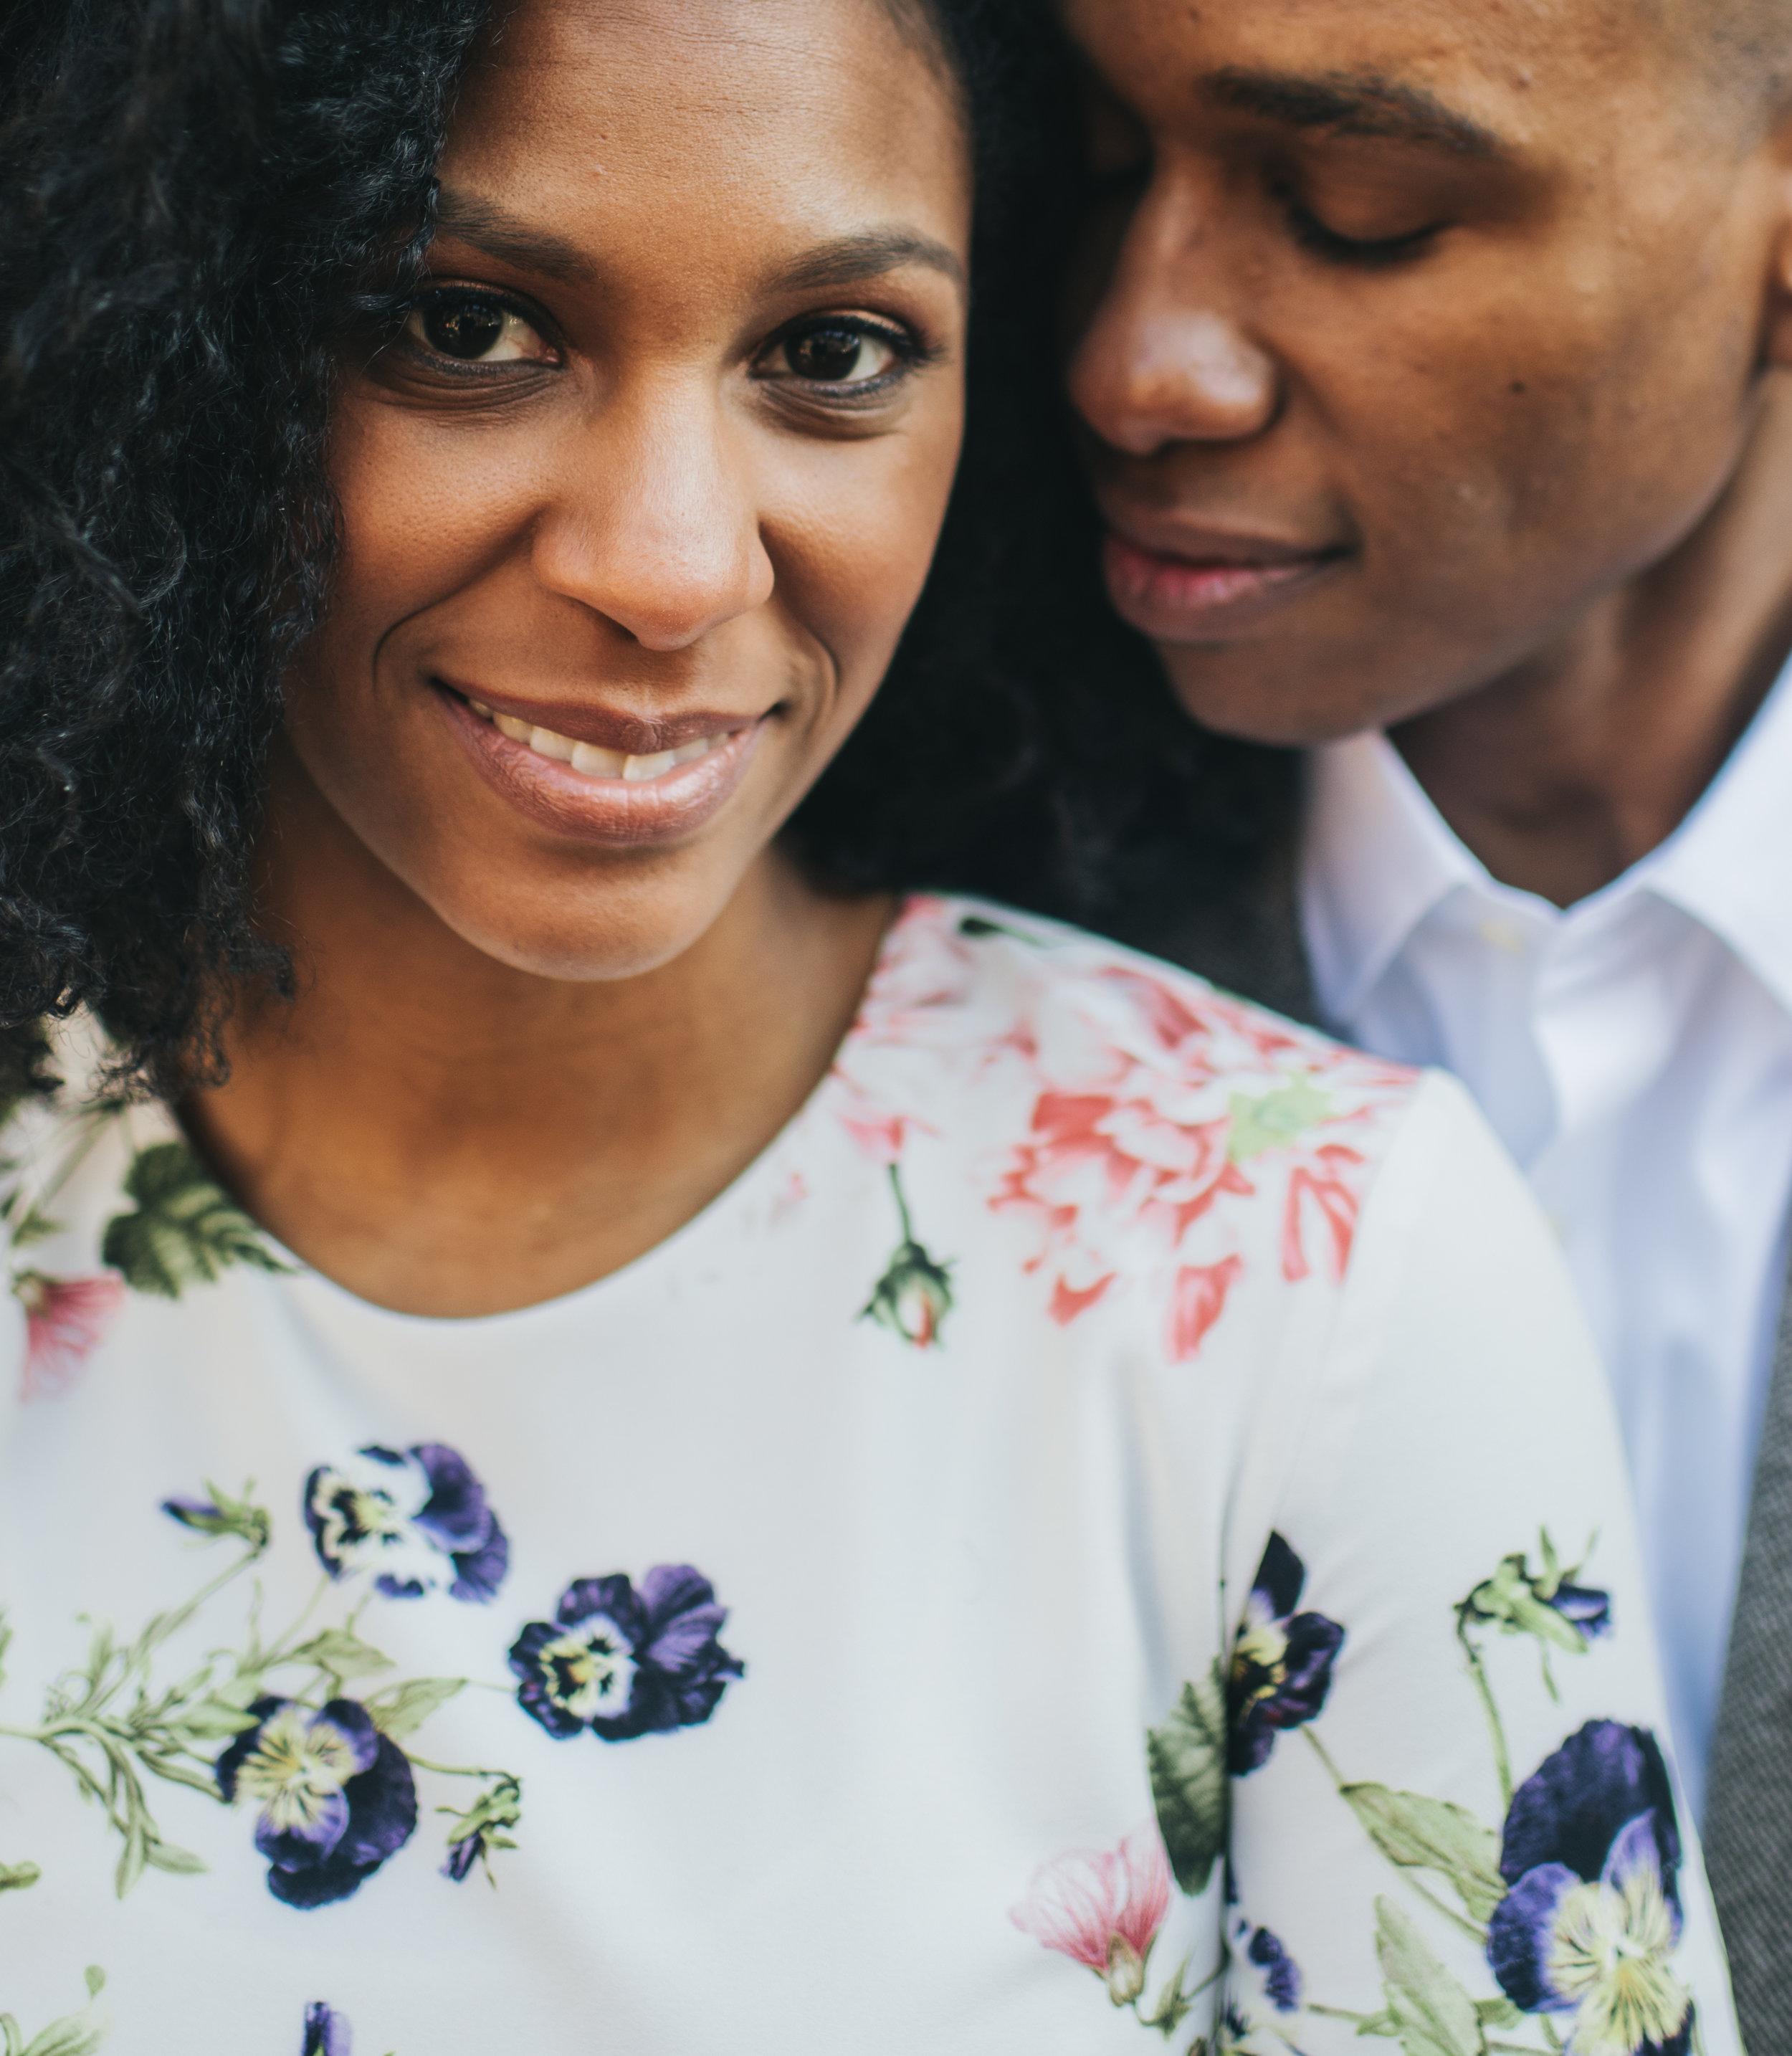 DANIELLE & BRANDON - HARLEM ENGAGEMENT SESSION - TWOTWENTY by CHI-CHI-77.jpg